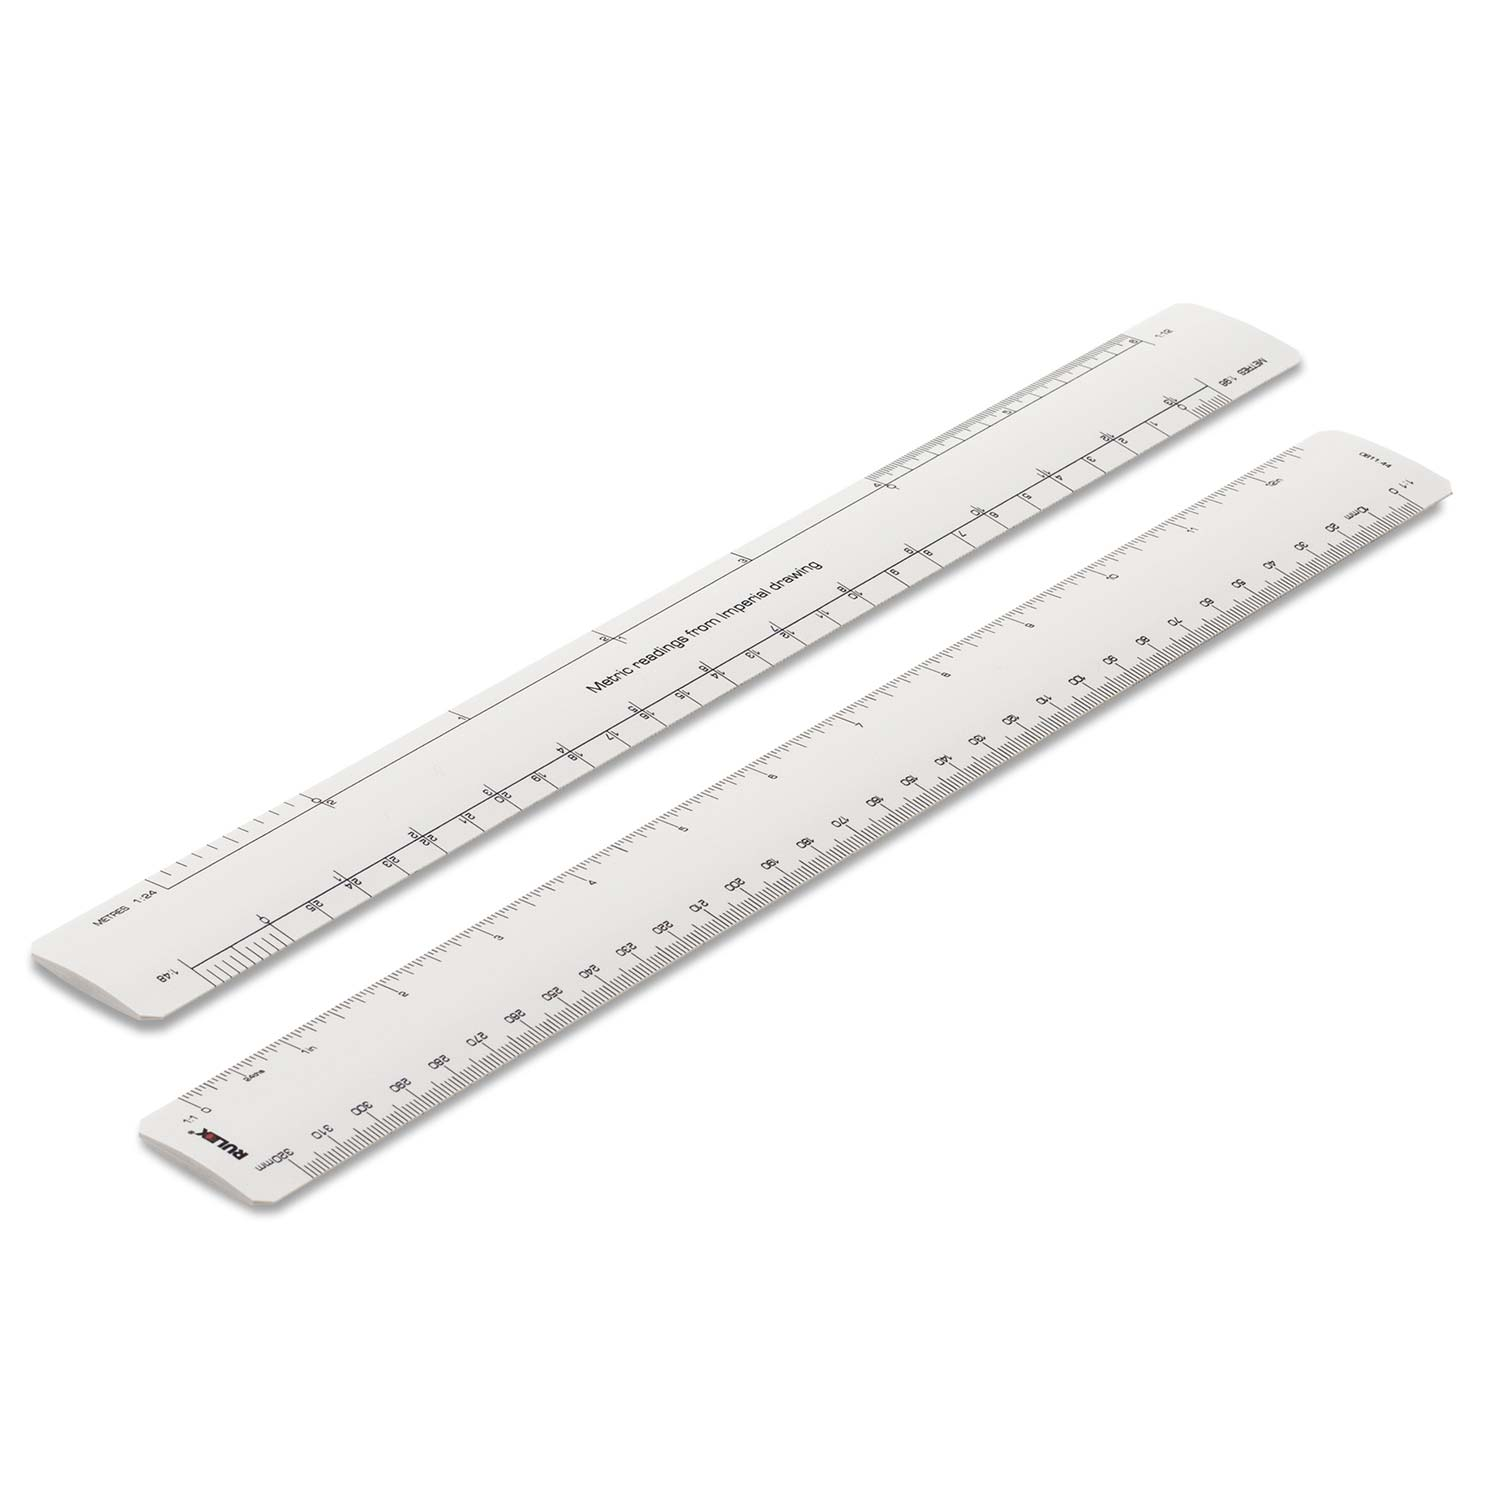 Rulex conversion scale ruler - converts imperial measurements to metric